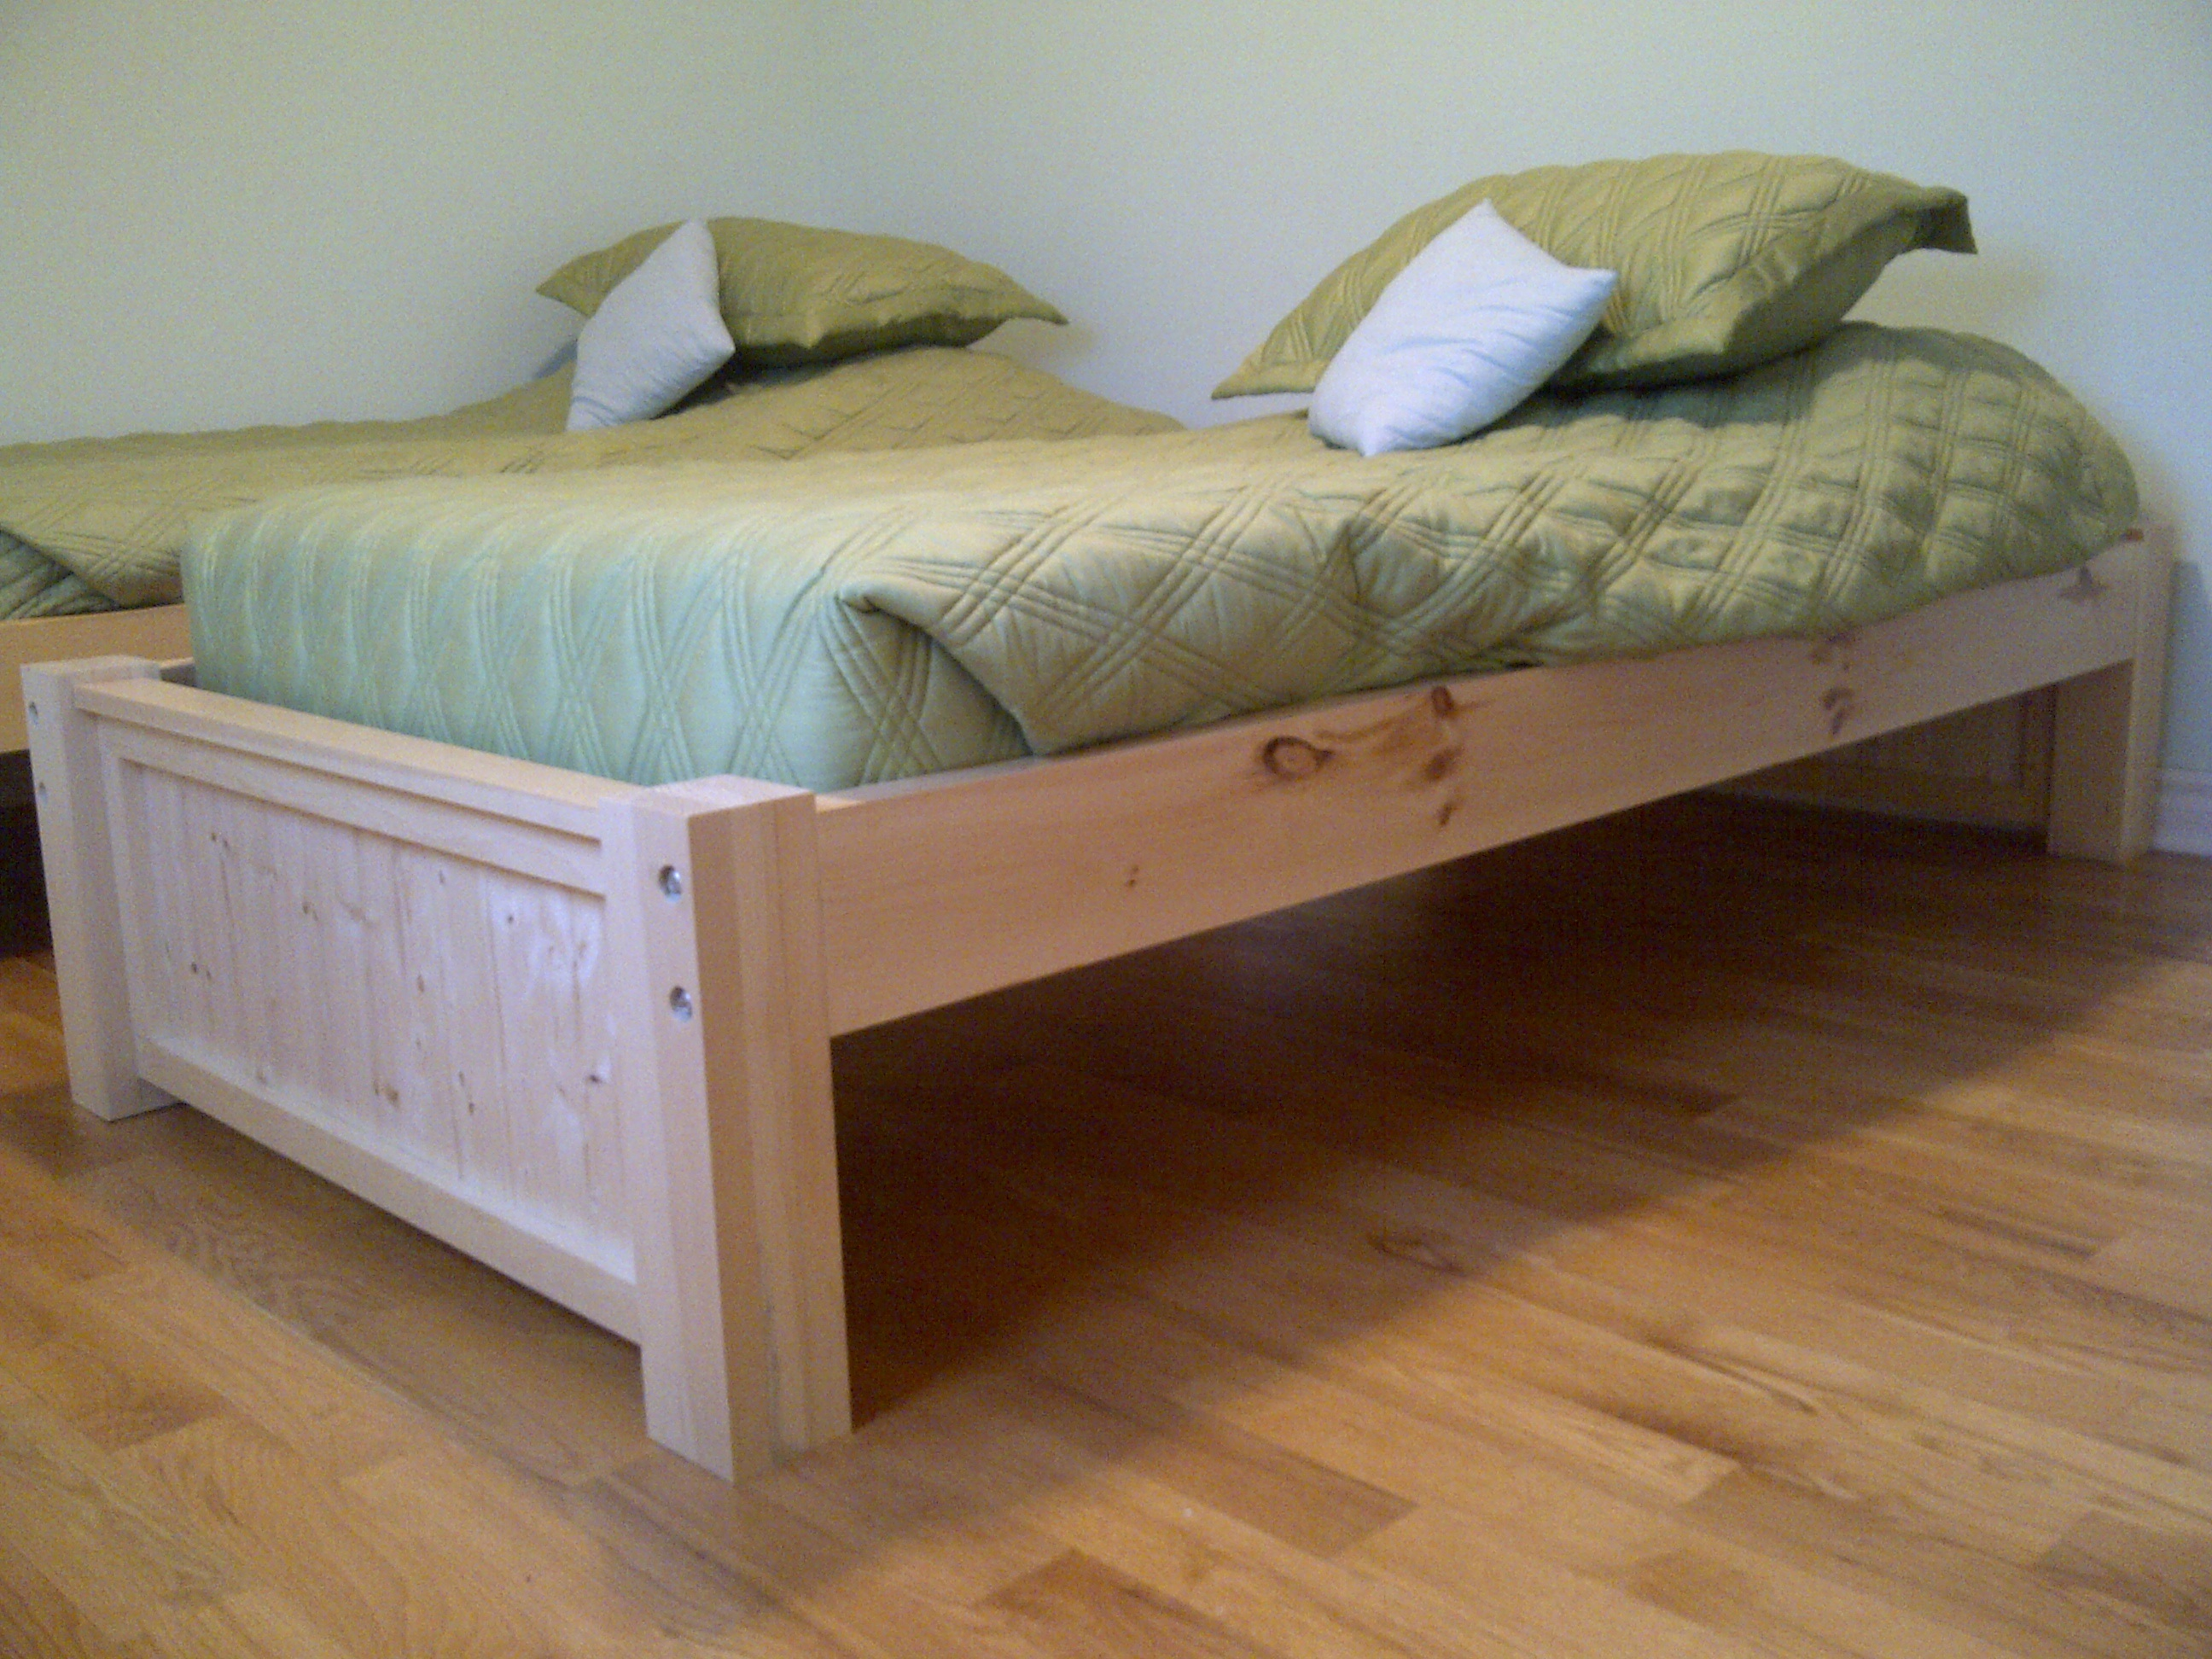 How to Build Twin Platform Bed Plans Storage Plans ...